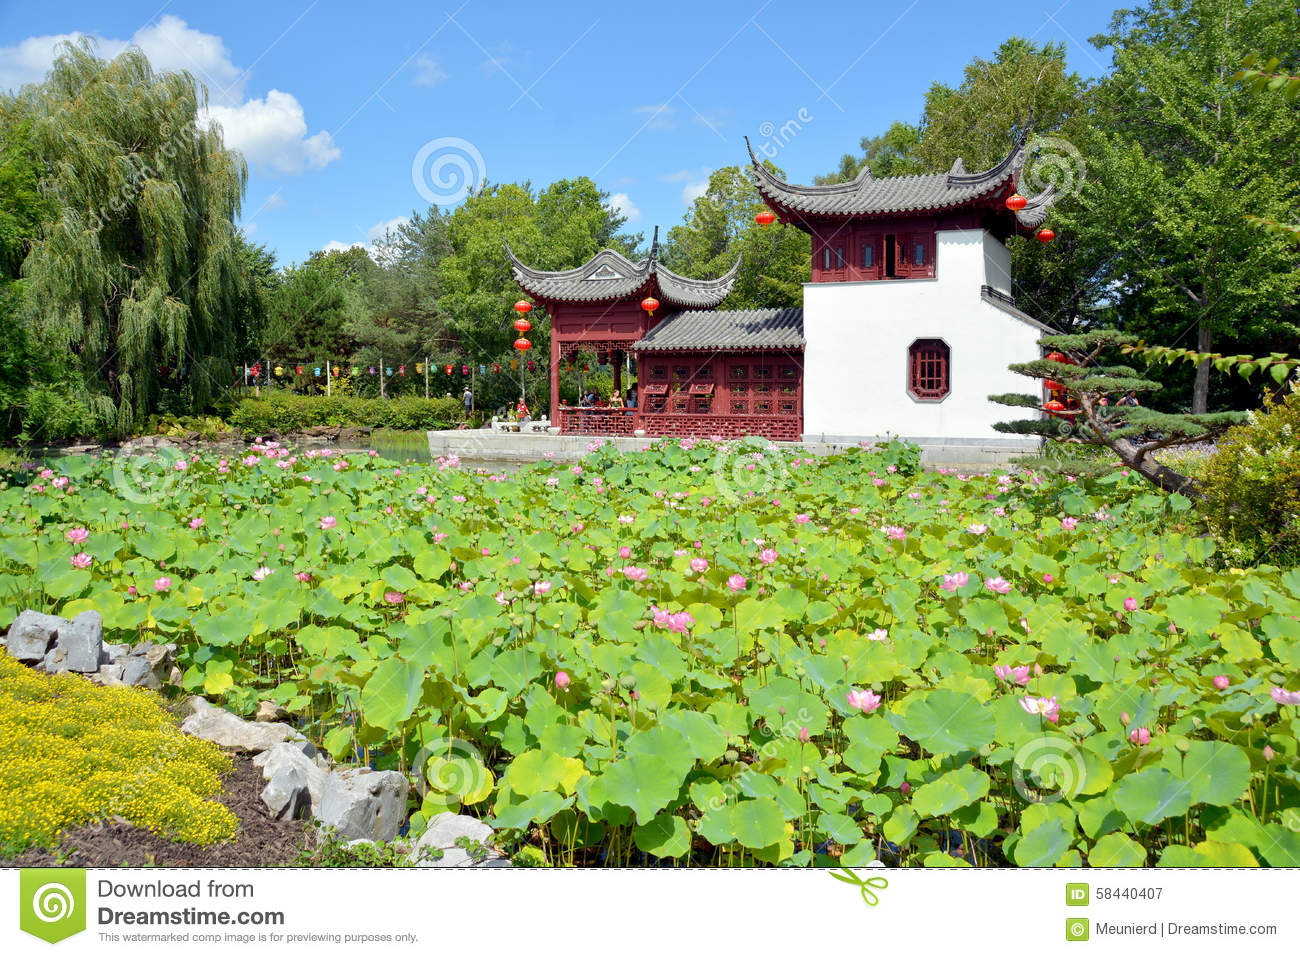 Chinese garden stock photo image 58440407 for Garden and its importance